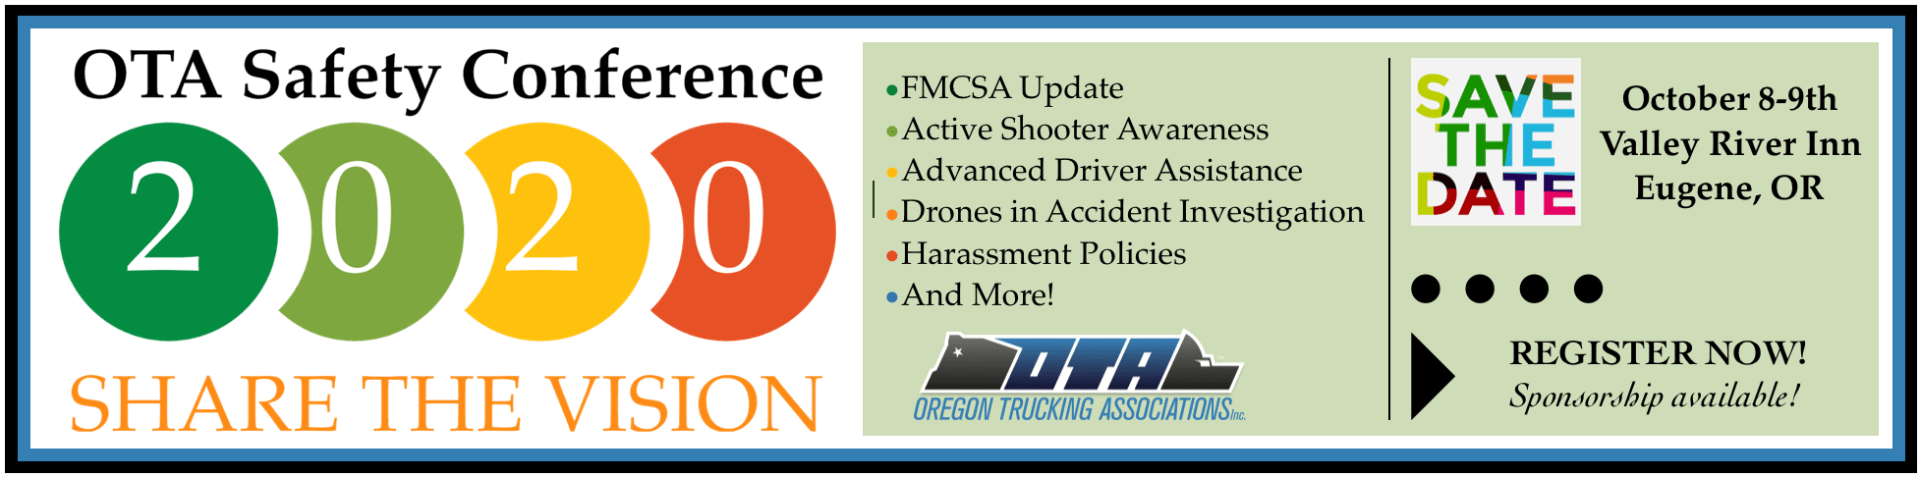 Safety-Conference-2020_09.23.20-w1920.png